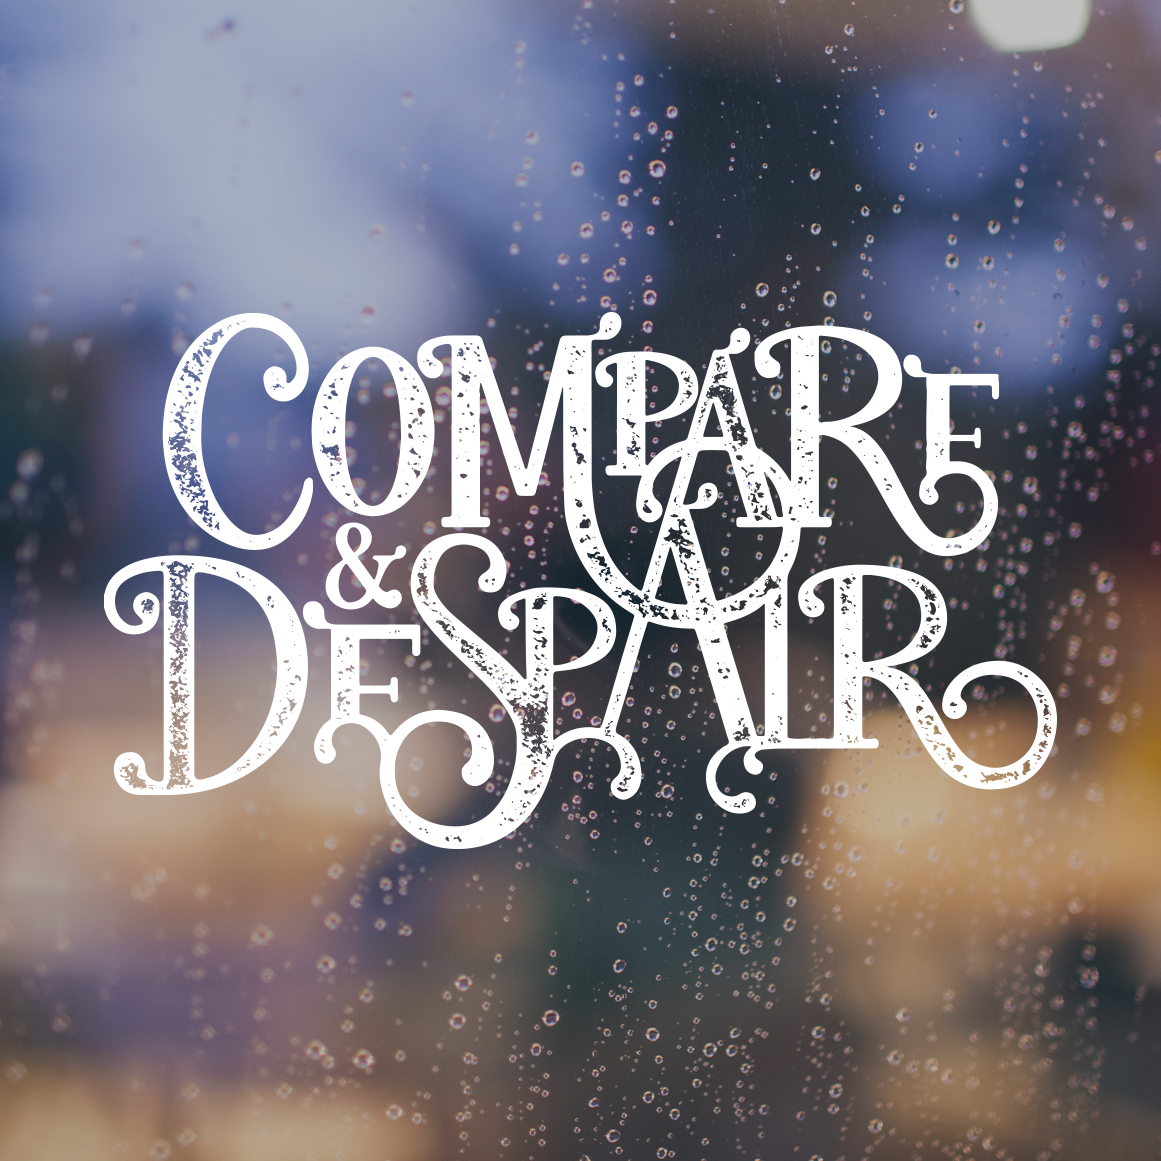 Compare and Despair Hand-lettering  image by  The Creative Shot